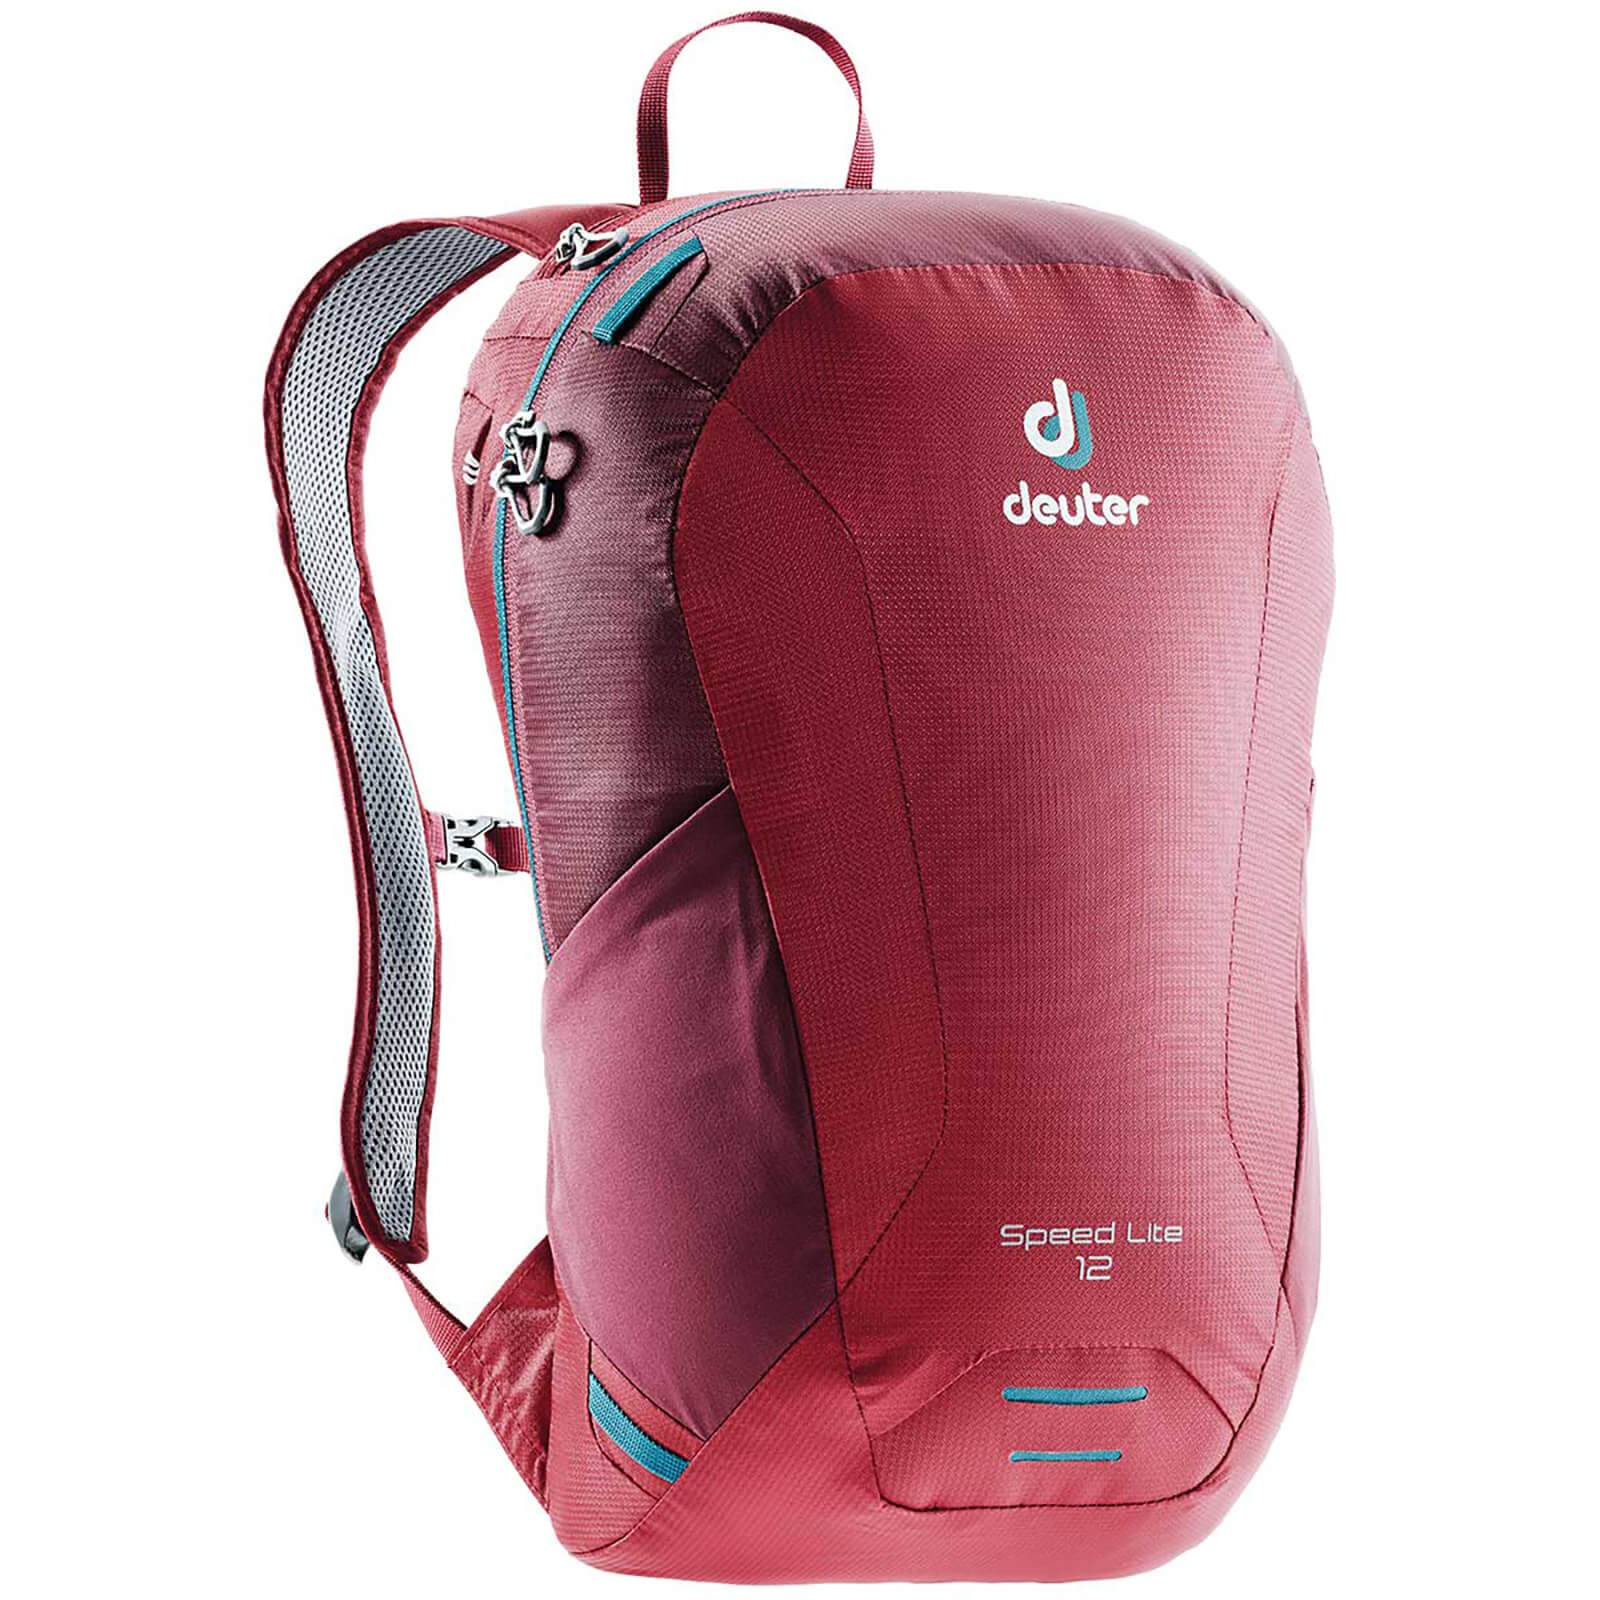 Deuter Speed Lite 12L Backpack - Cranberry/Maroon